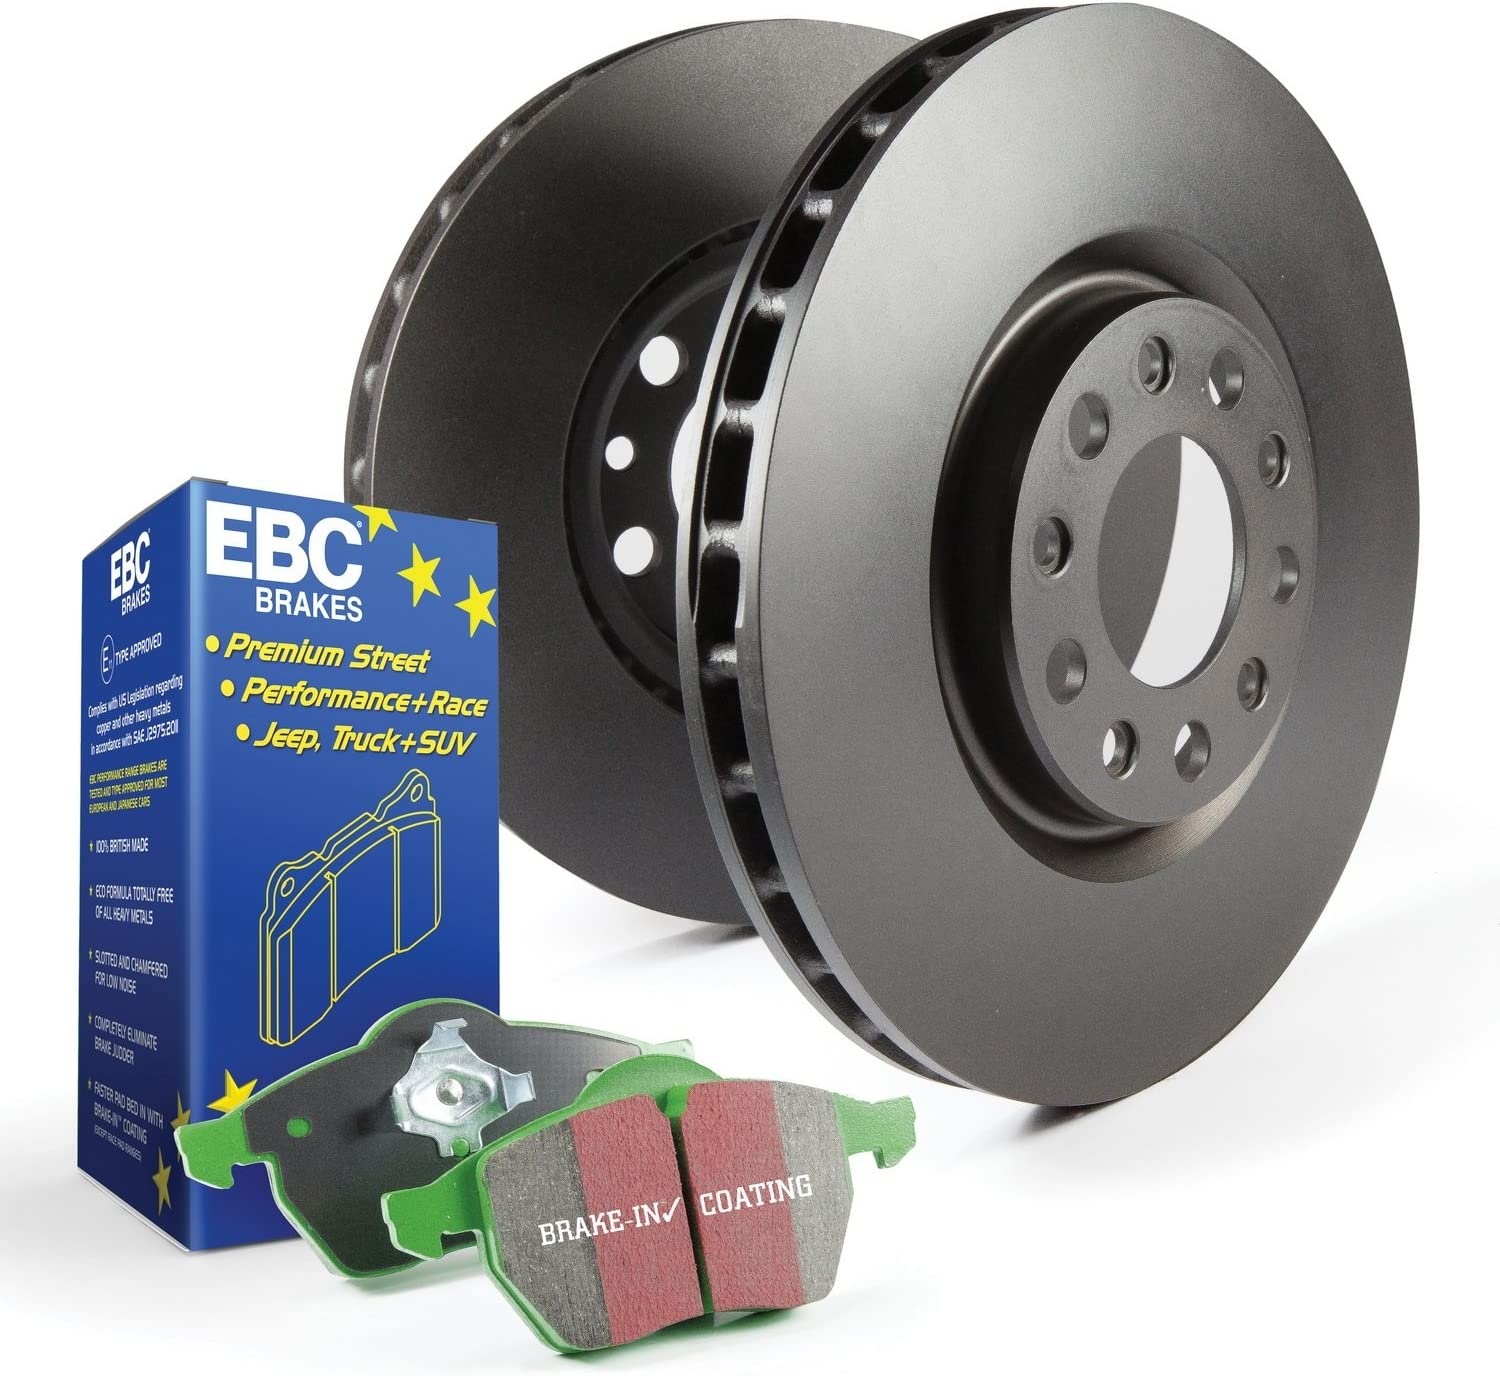 EBC Brakes S11KF1030 S11 Front Kits Greenstuff 2000 and RK Rotors